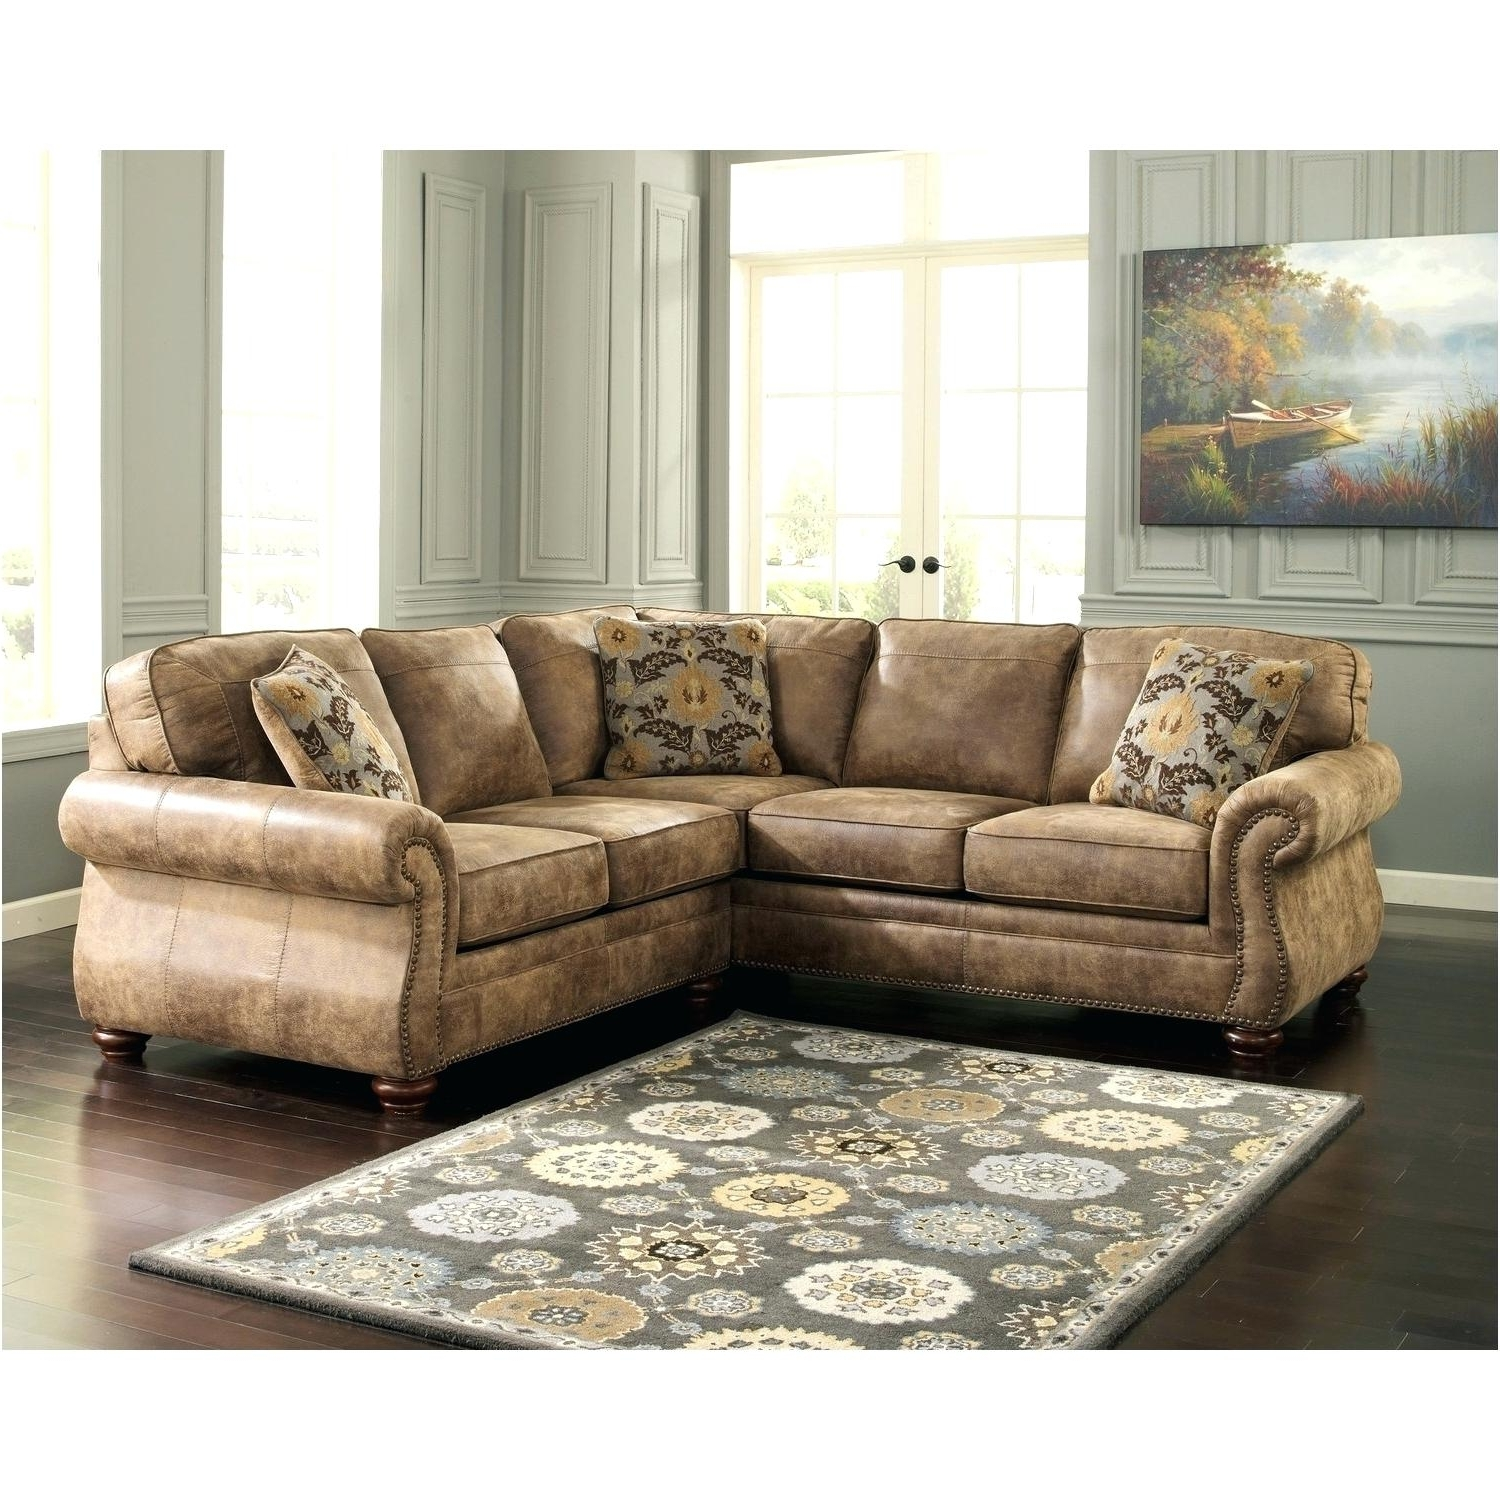 Preferred Sectionals Sofa S Sofas Ikea For Sale Sectional Small Spaces Throughout Sectional Sofas In Toronto (View 5 of 20)